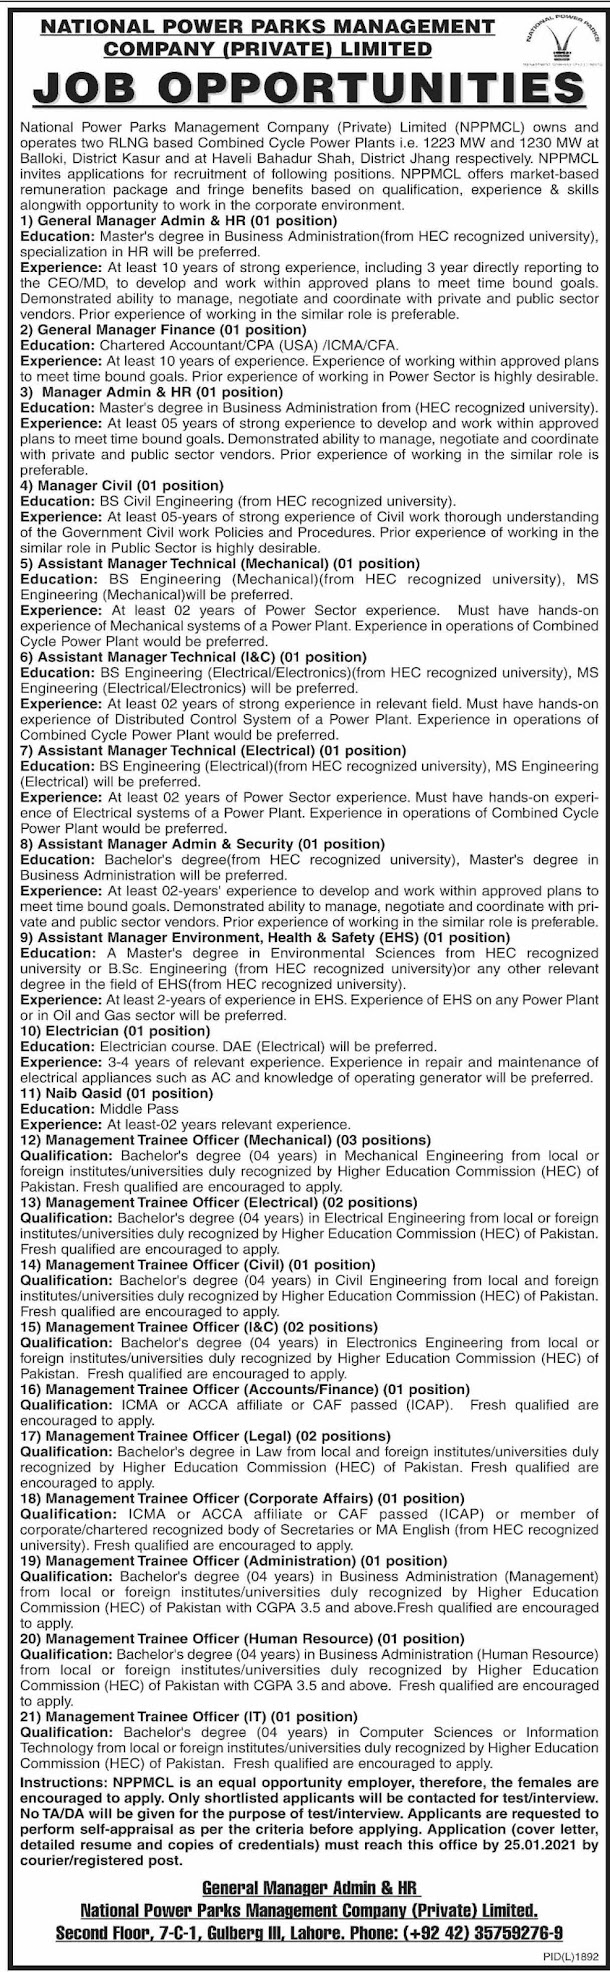 National Food Park Management Company Private Limited Jobs 2021 - NPPMCL Jobs 2021 - Latest Jobs 2021 in Pakistan